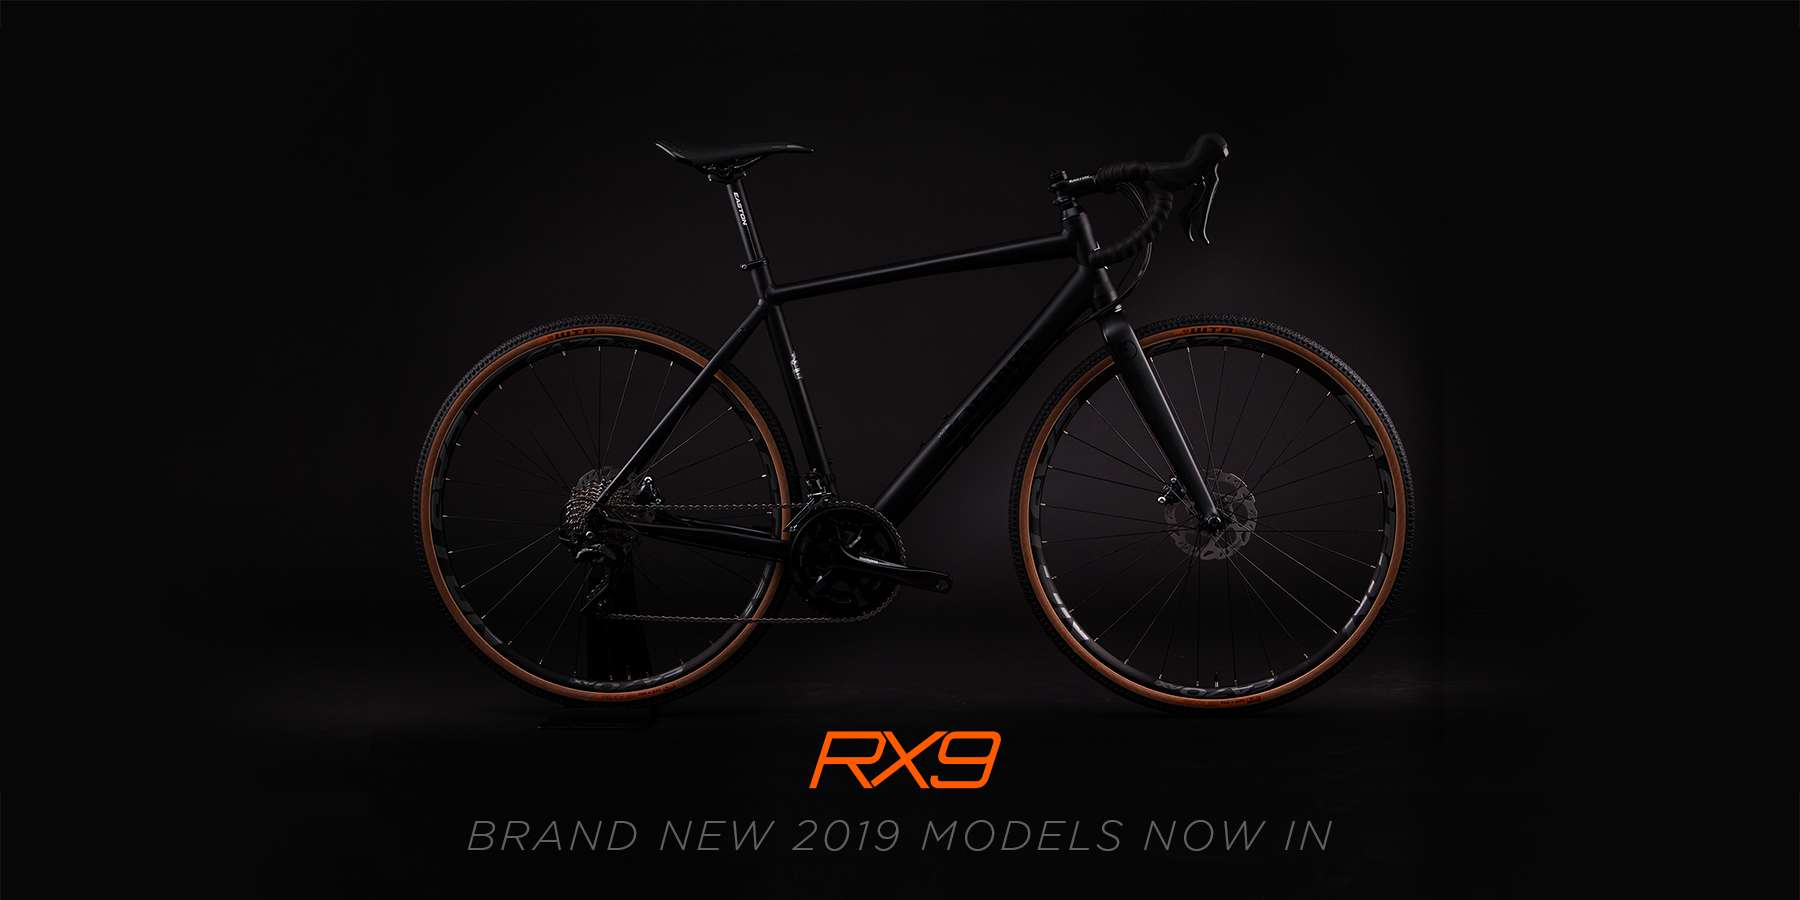 The New RX9s are here